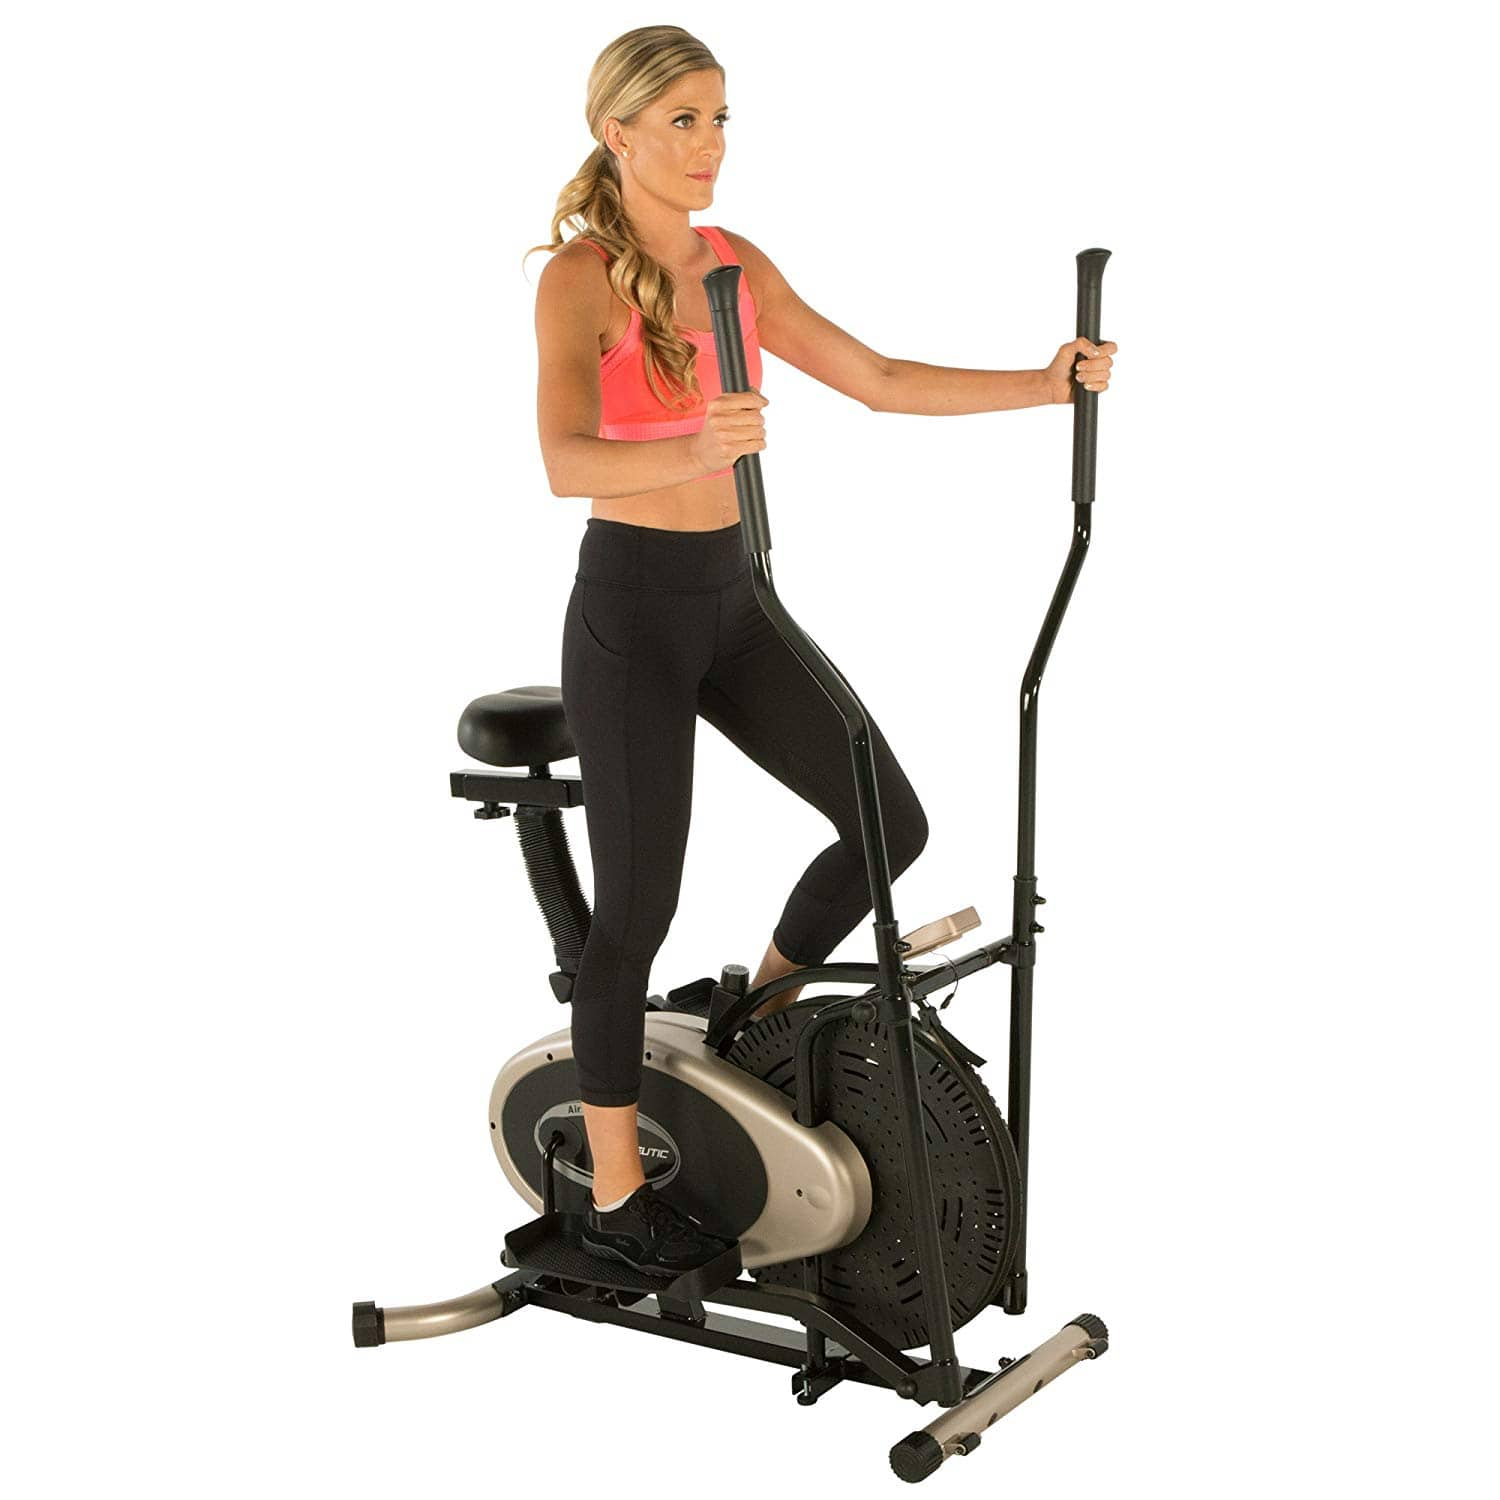 Exerpeutic GOLD Elliptical and Exercise Bike Dual Trainer $109.99